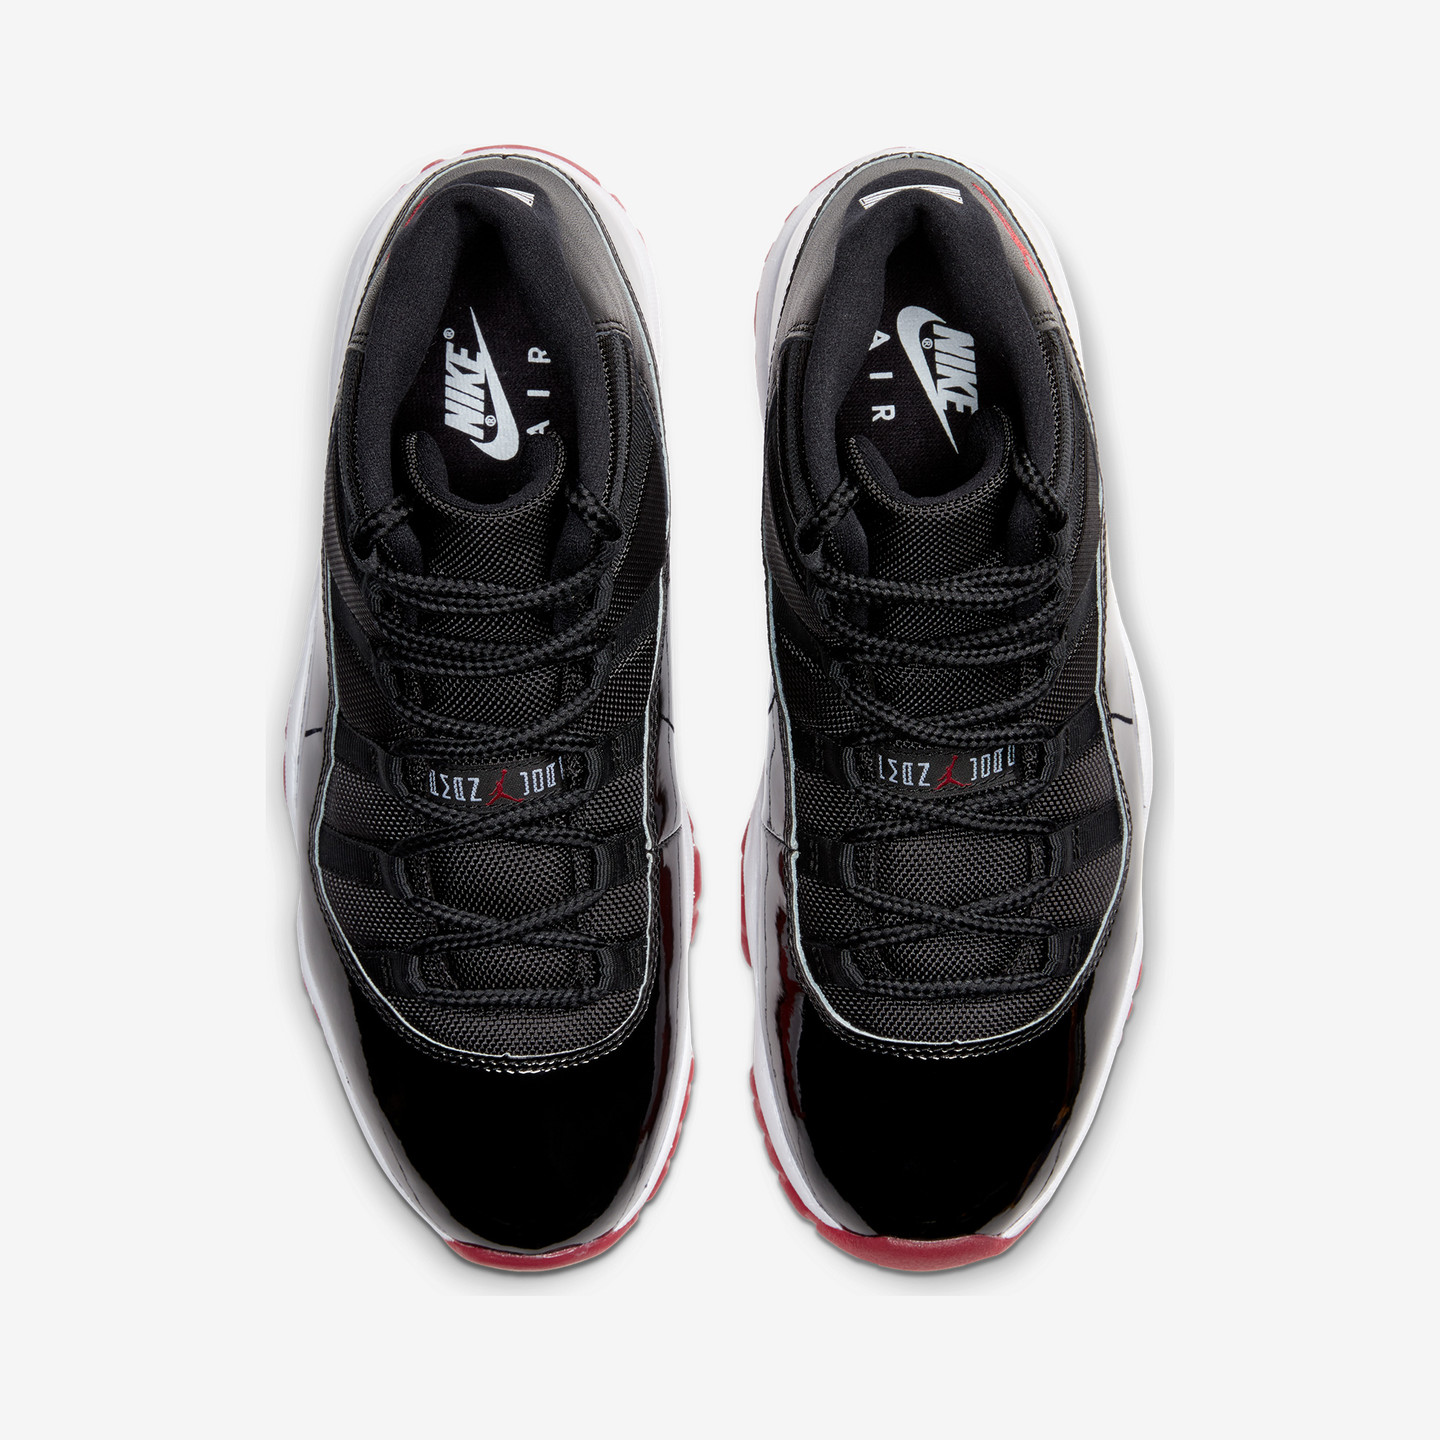 Jordan Air Jordan 11 Retro 'Bred' Black / True Red / White 378037-061